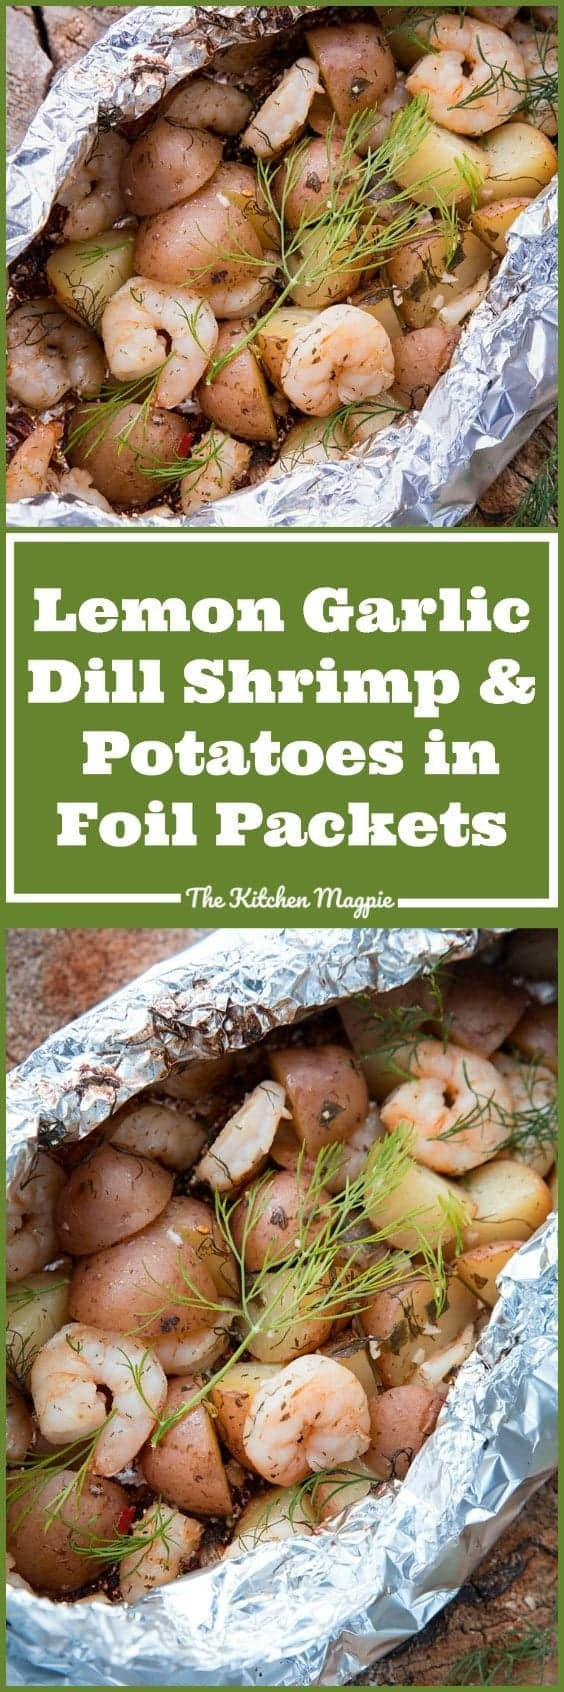 Lemon Garlic Dill Shrimp & Potatoes in Foil Packets. I rarely rough it while camping and these are an easy, delicious meal!